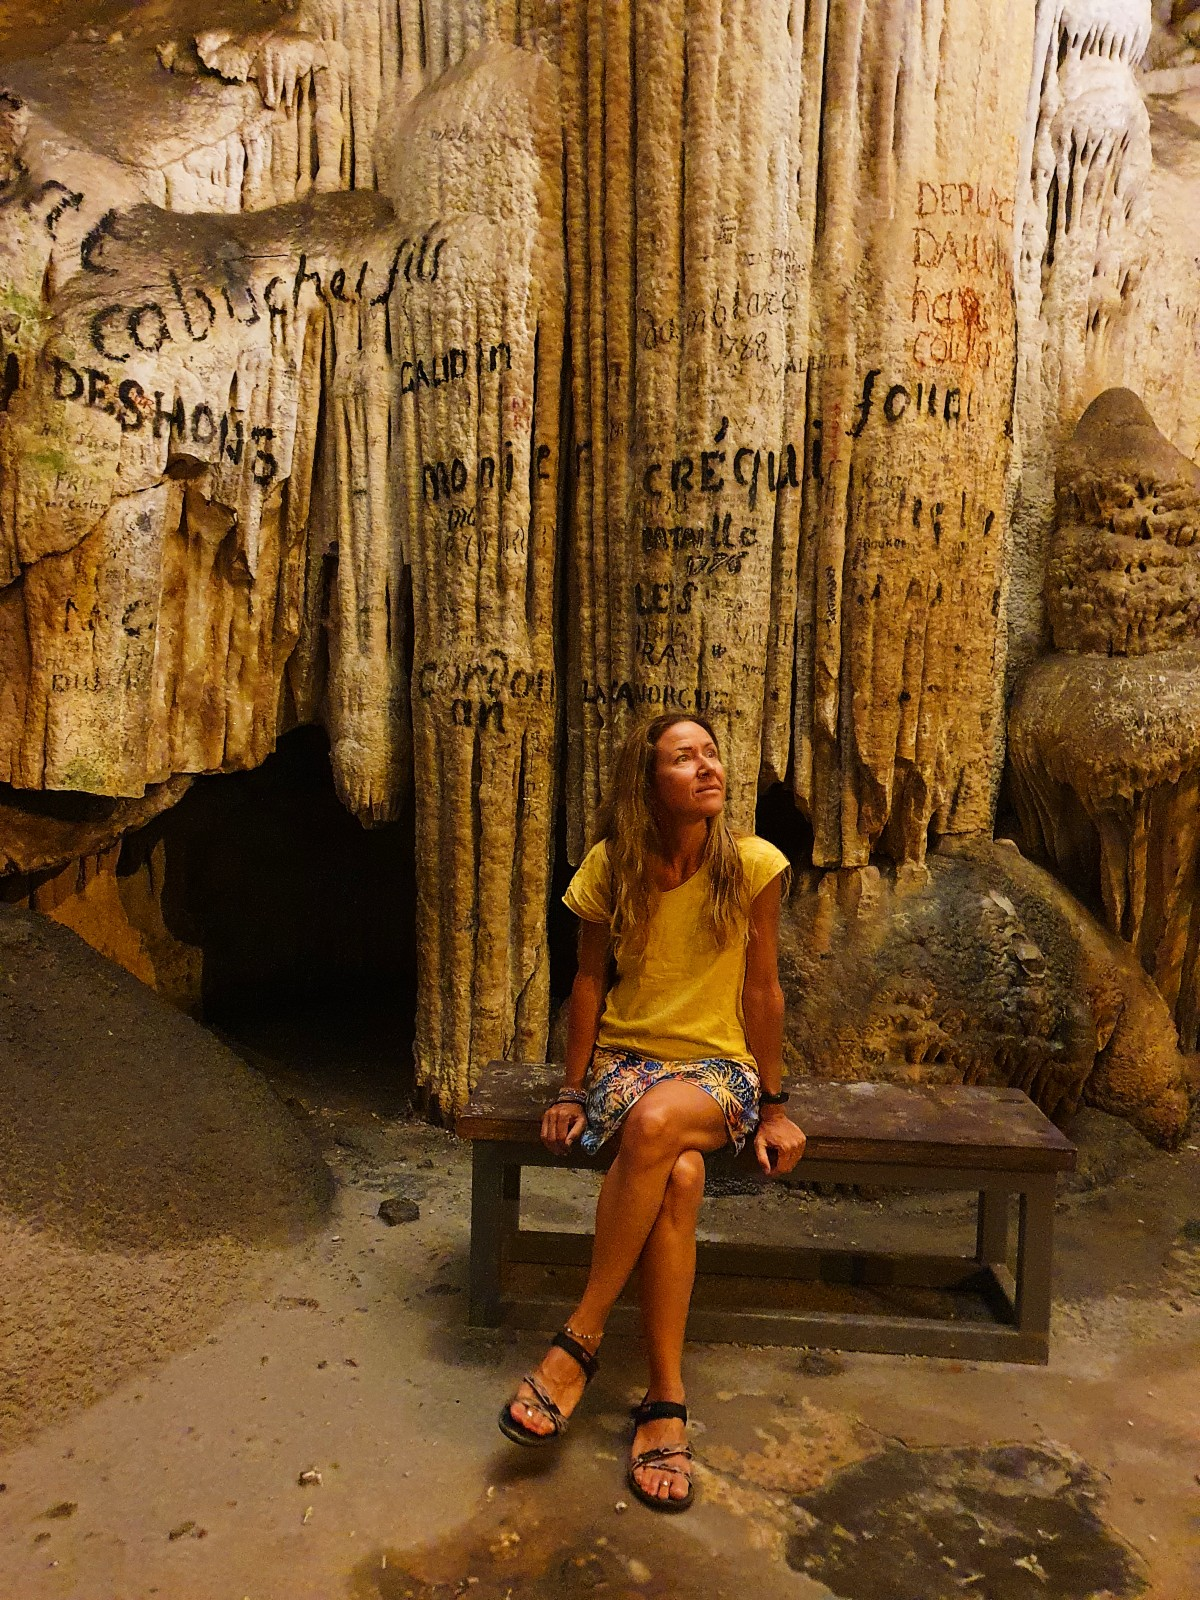 Sitting inside the cave of Antiparos